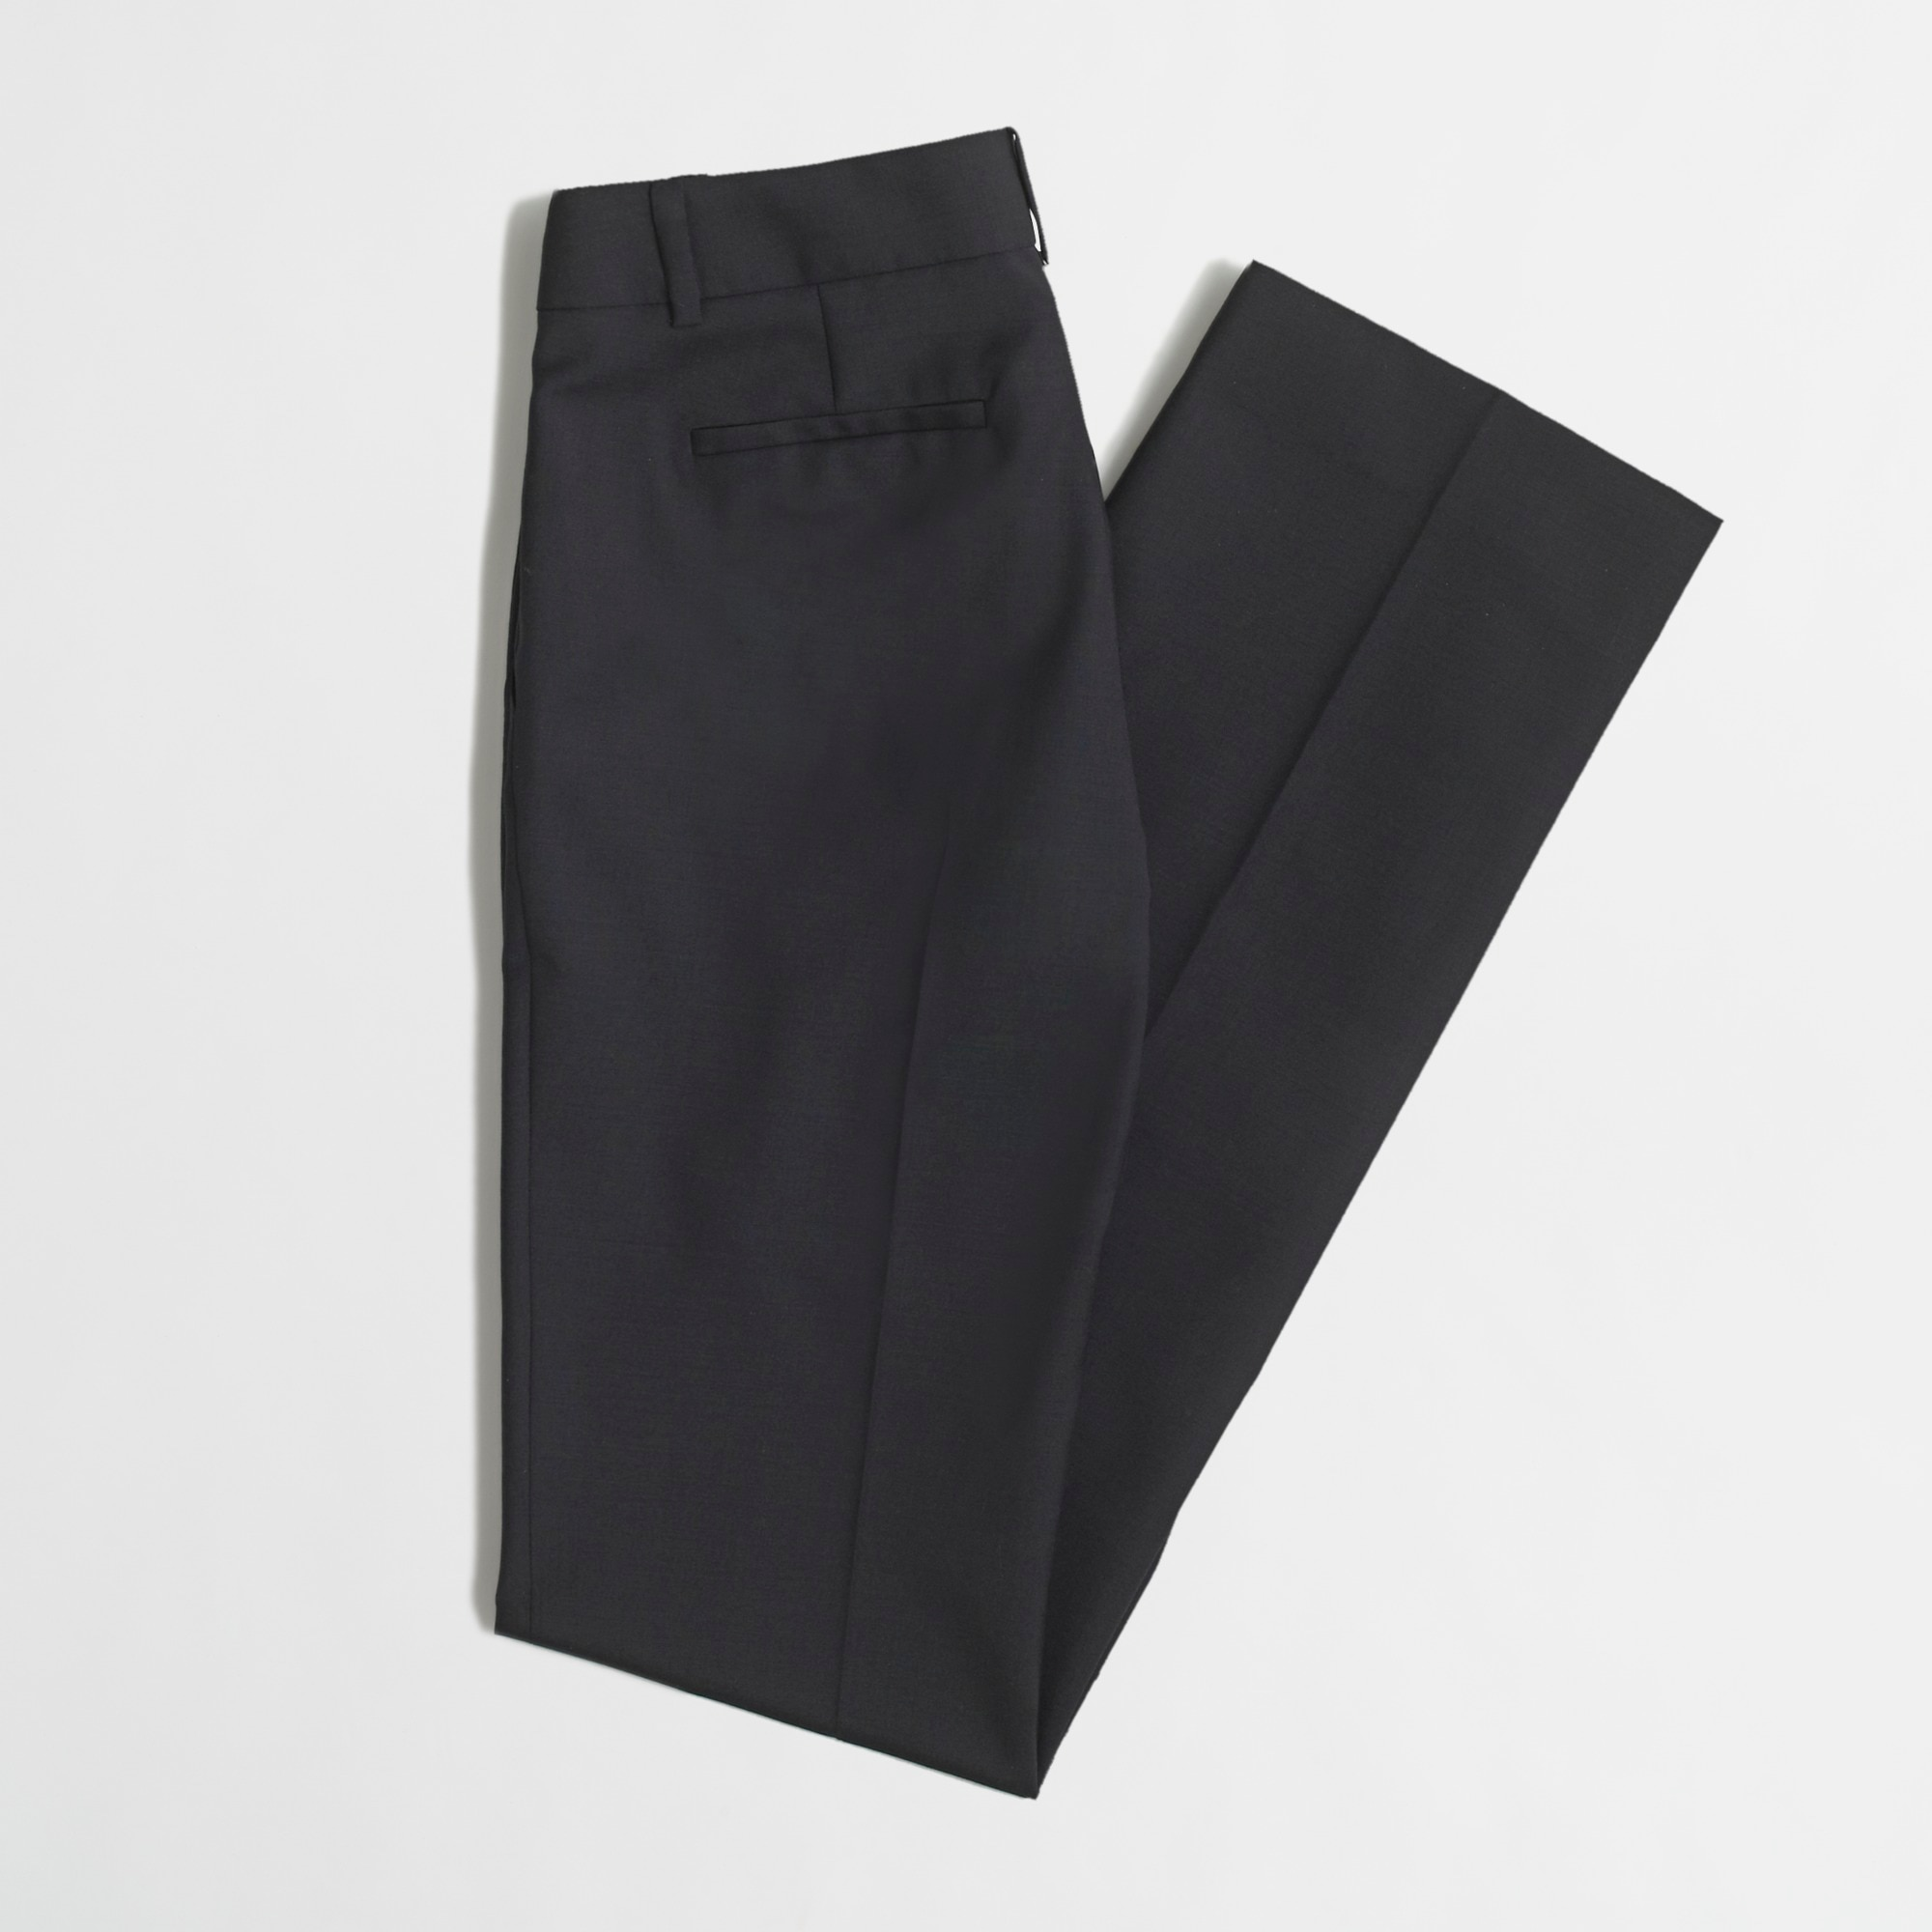 Image 2 for Suiting pant in lightweight wool